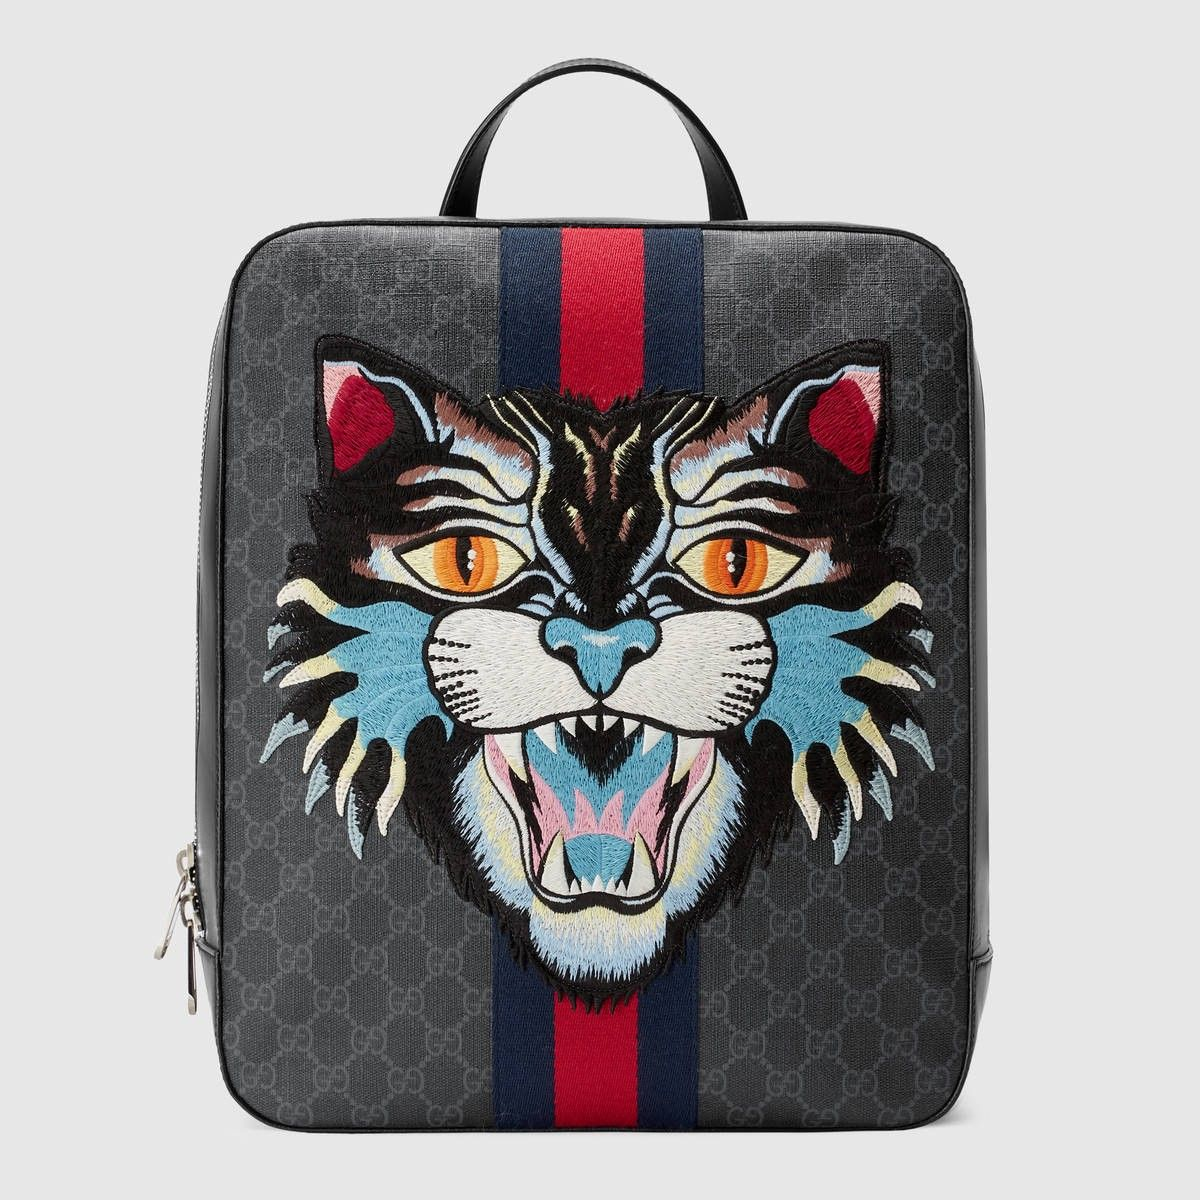 e1dc50721f9f GUCCI Gg Supreme Backpack With Angry Cat - Gg Supreme. #gucci #bags #canvas  #leather #lining #linen #backpacks #cotton #